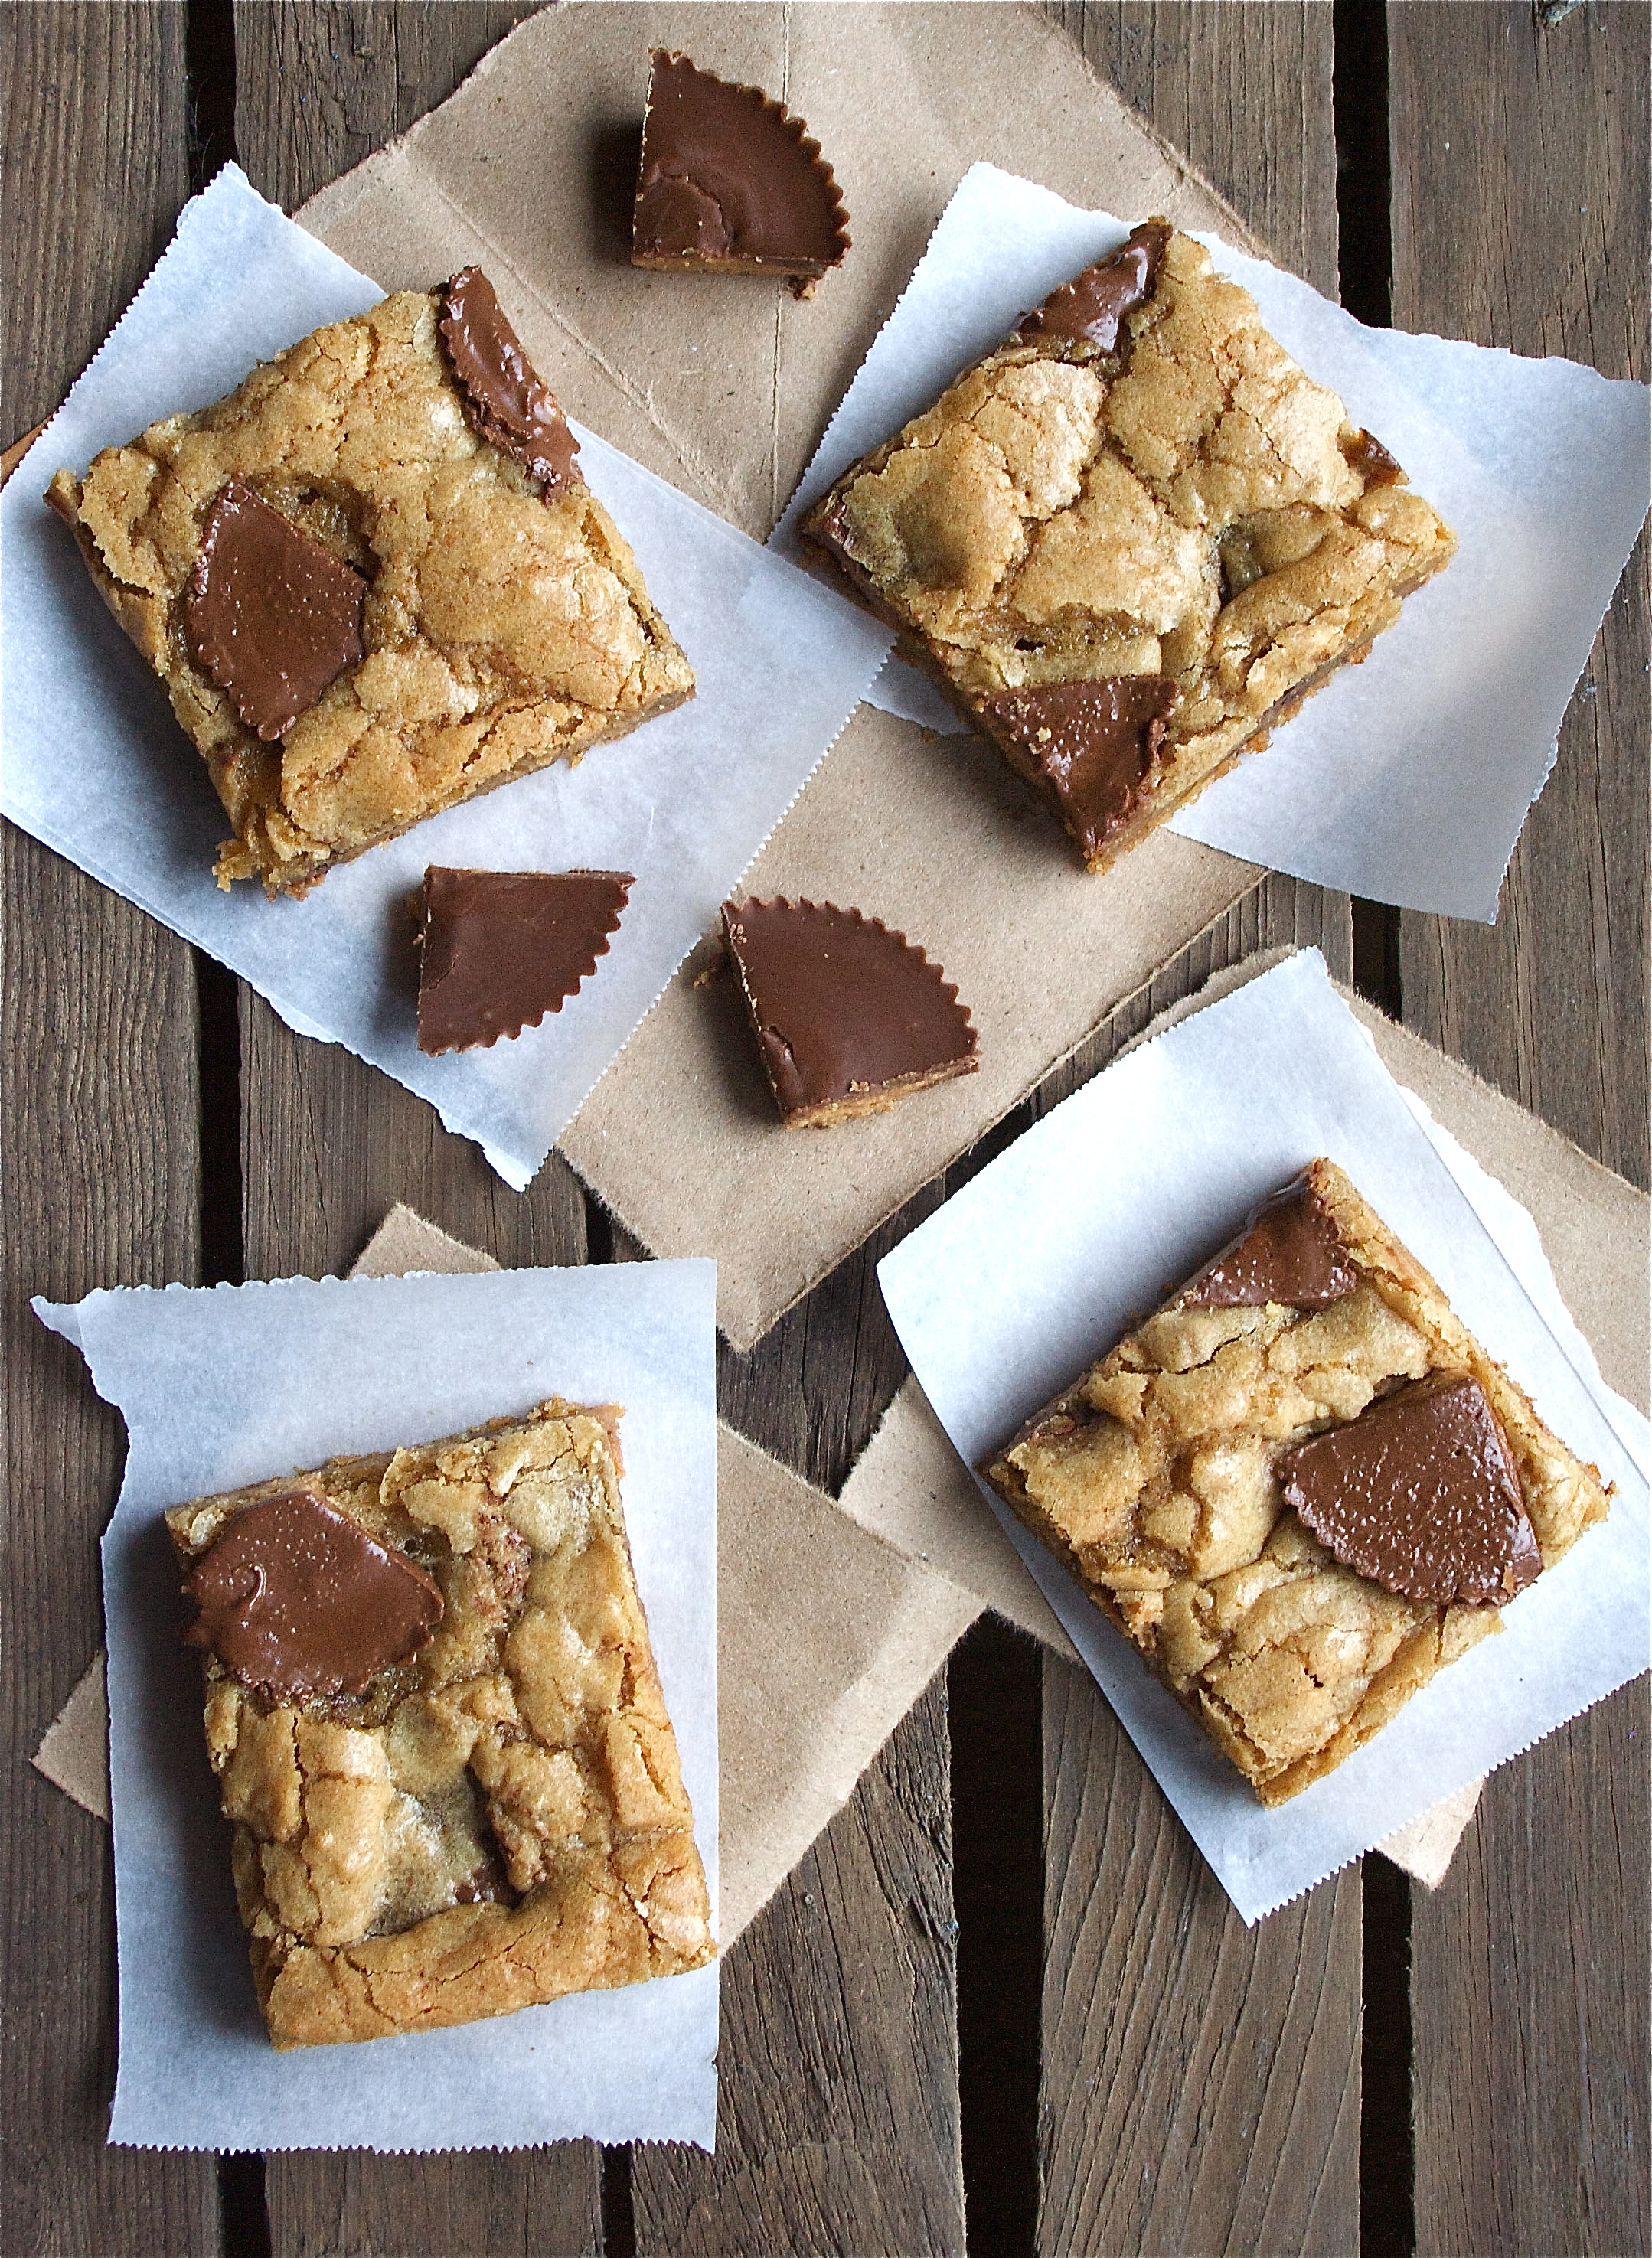 peanut butter cup blondie dessert recipe